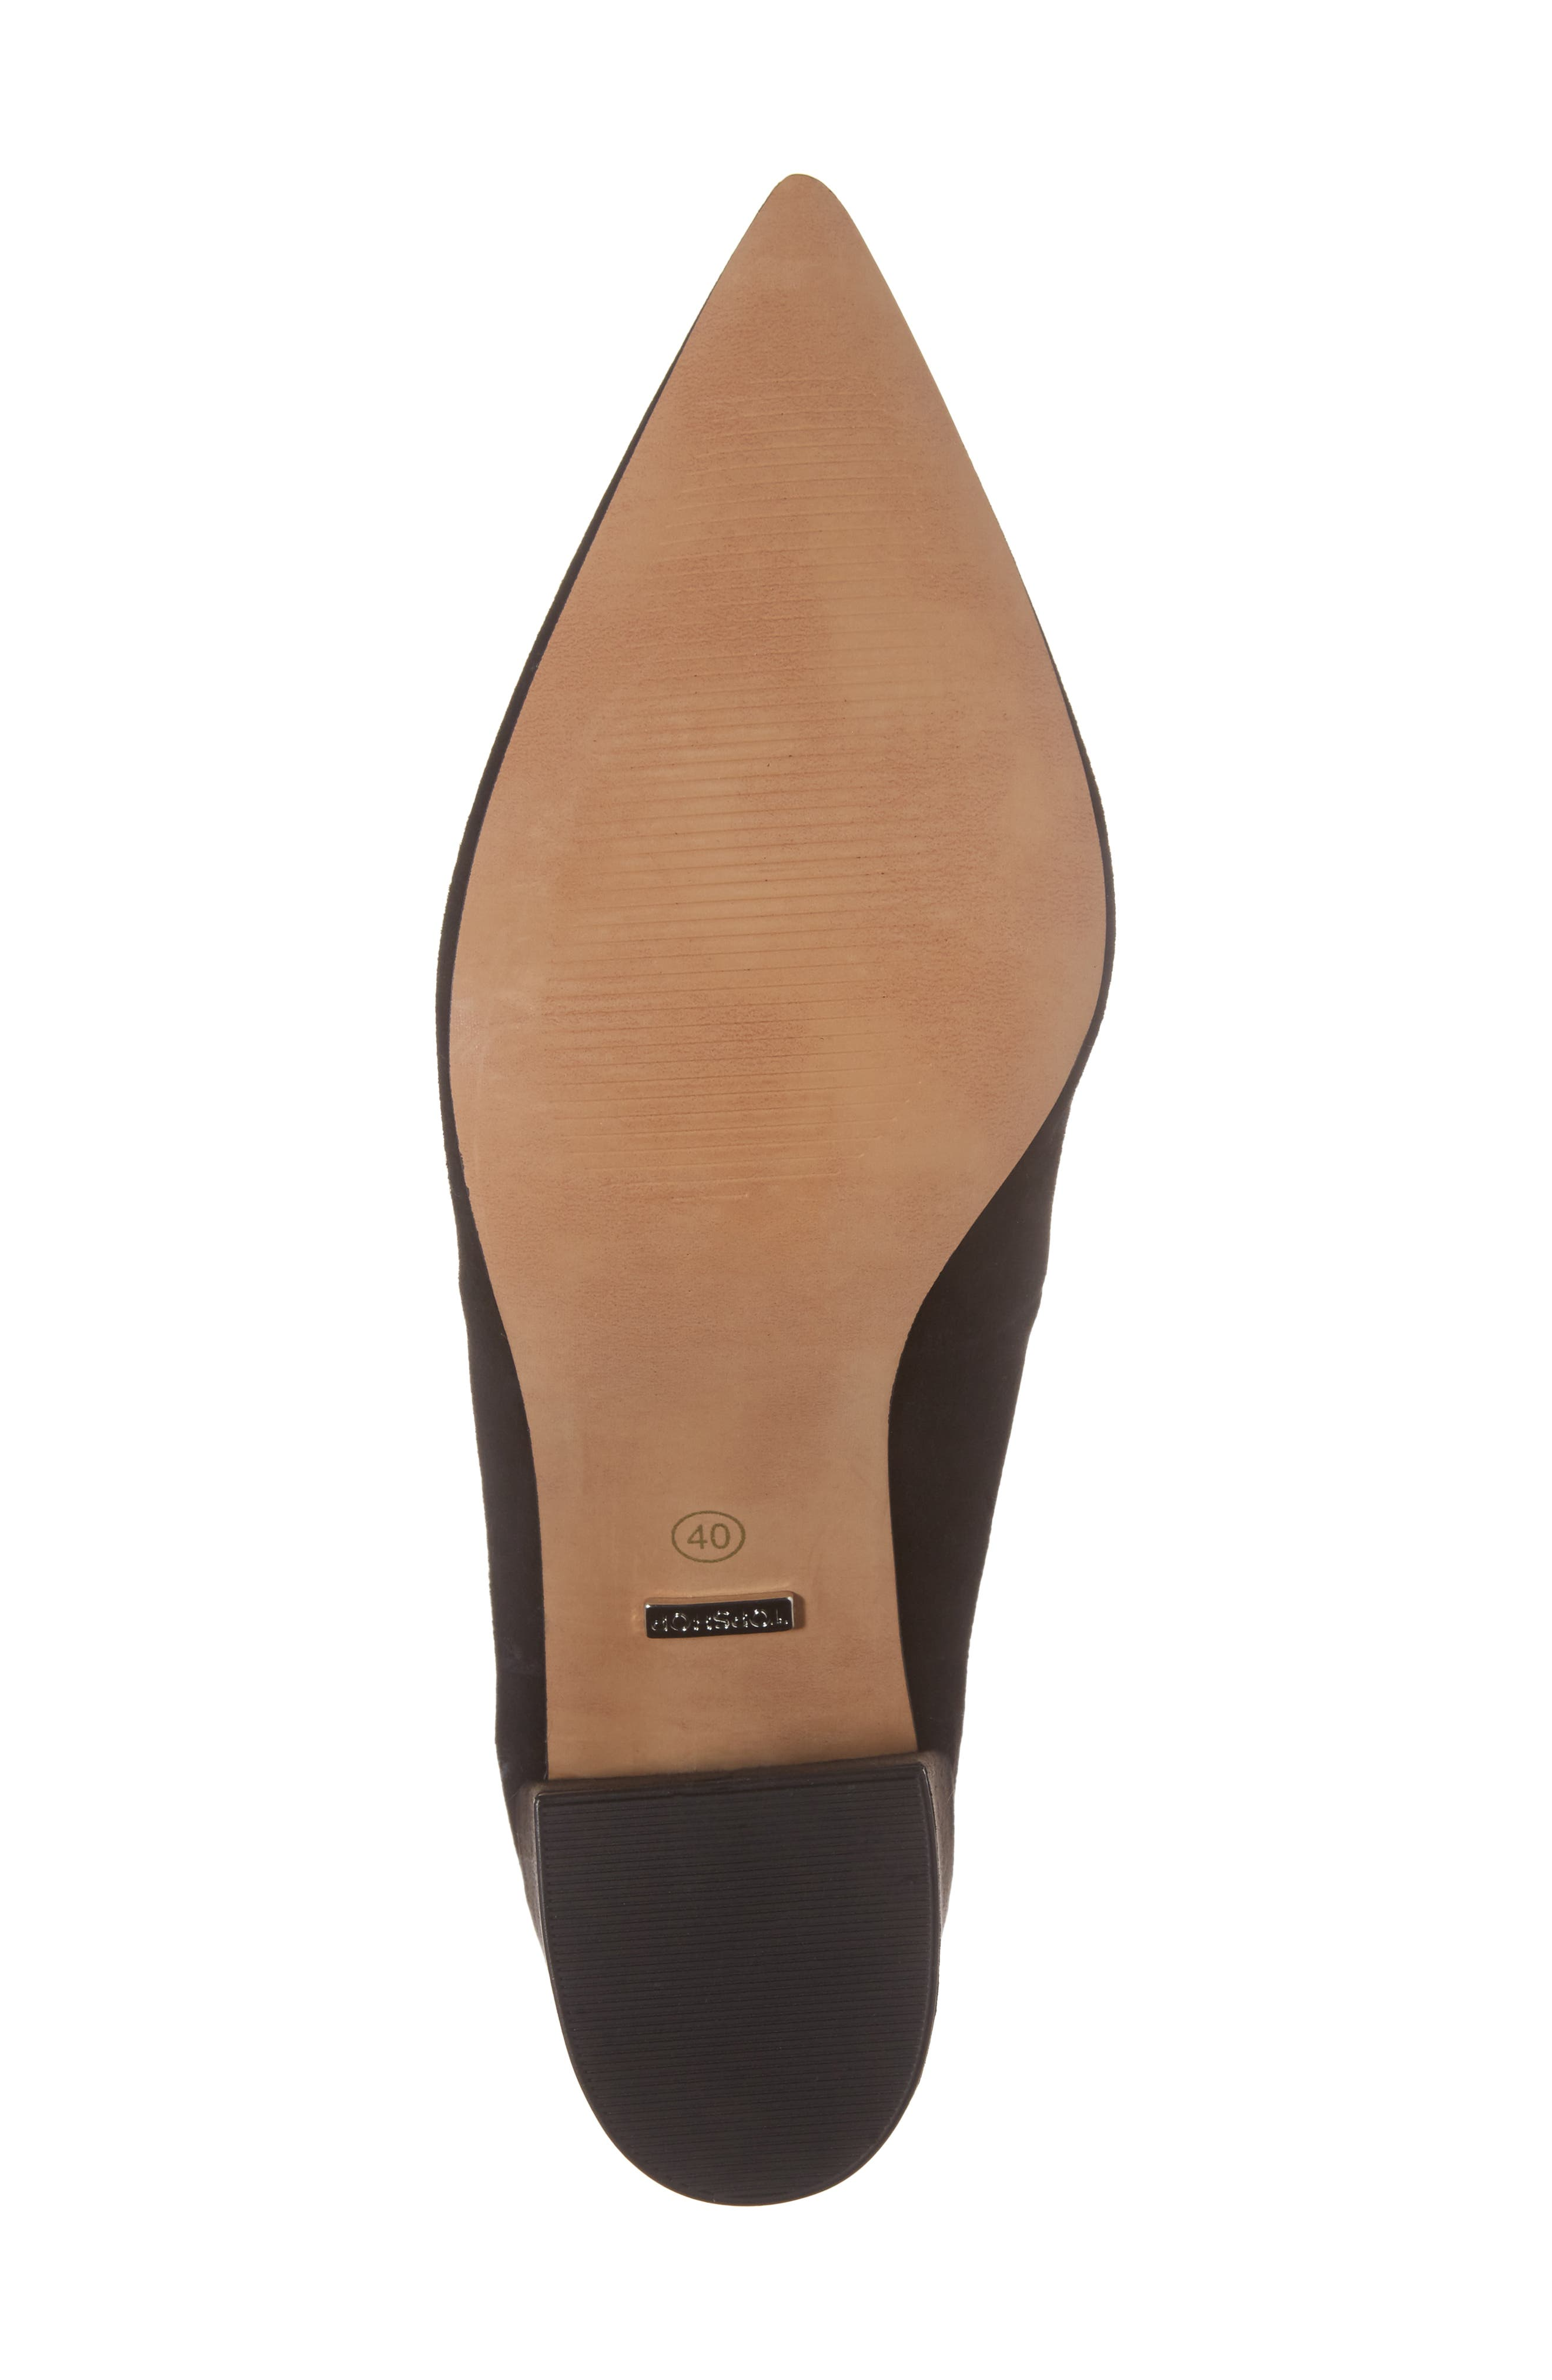 Greatal Pointy Toe Pump,                             Alternate thumbnail 6, color,                             001